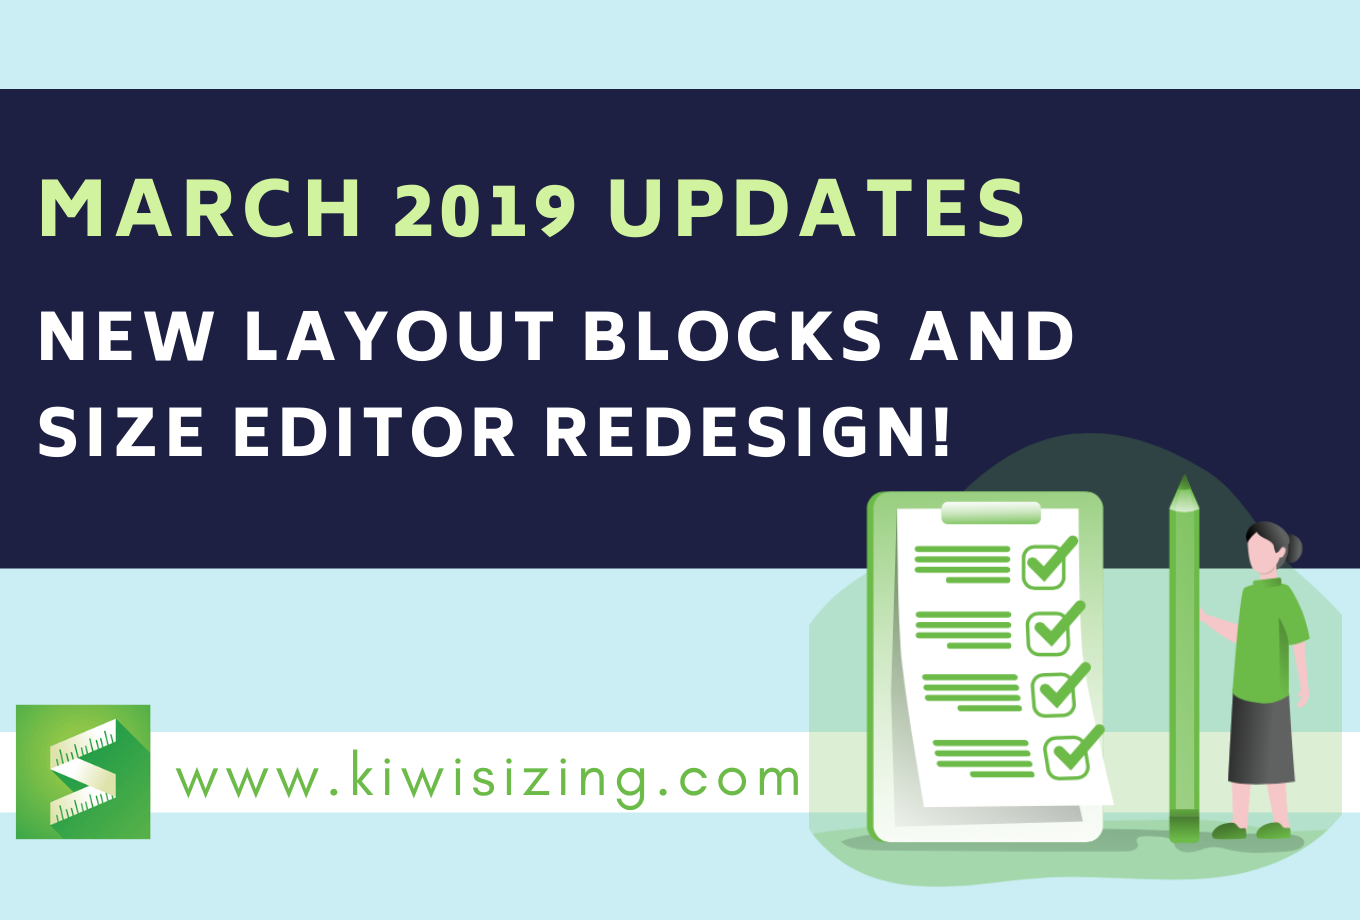 March 2019 Updates: New layout blocks and size editor redesign!